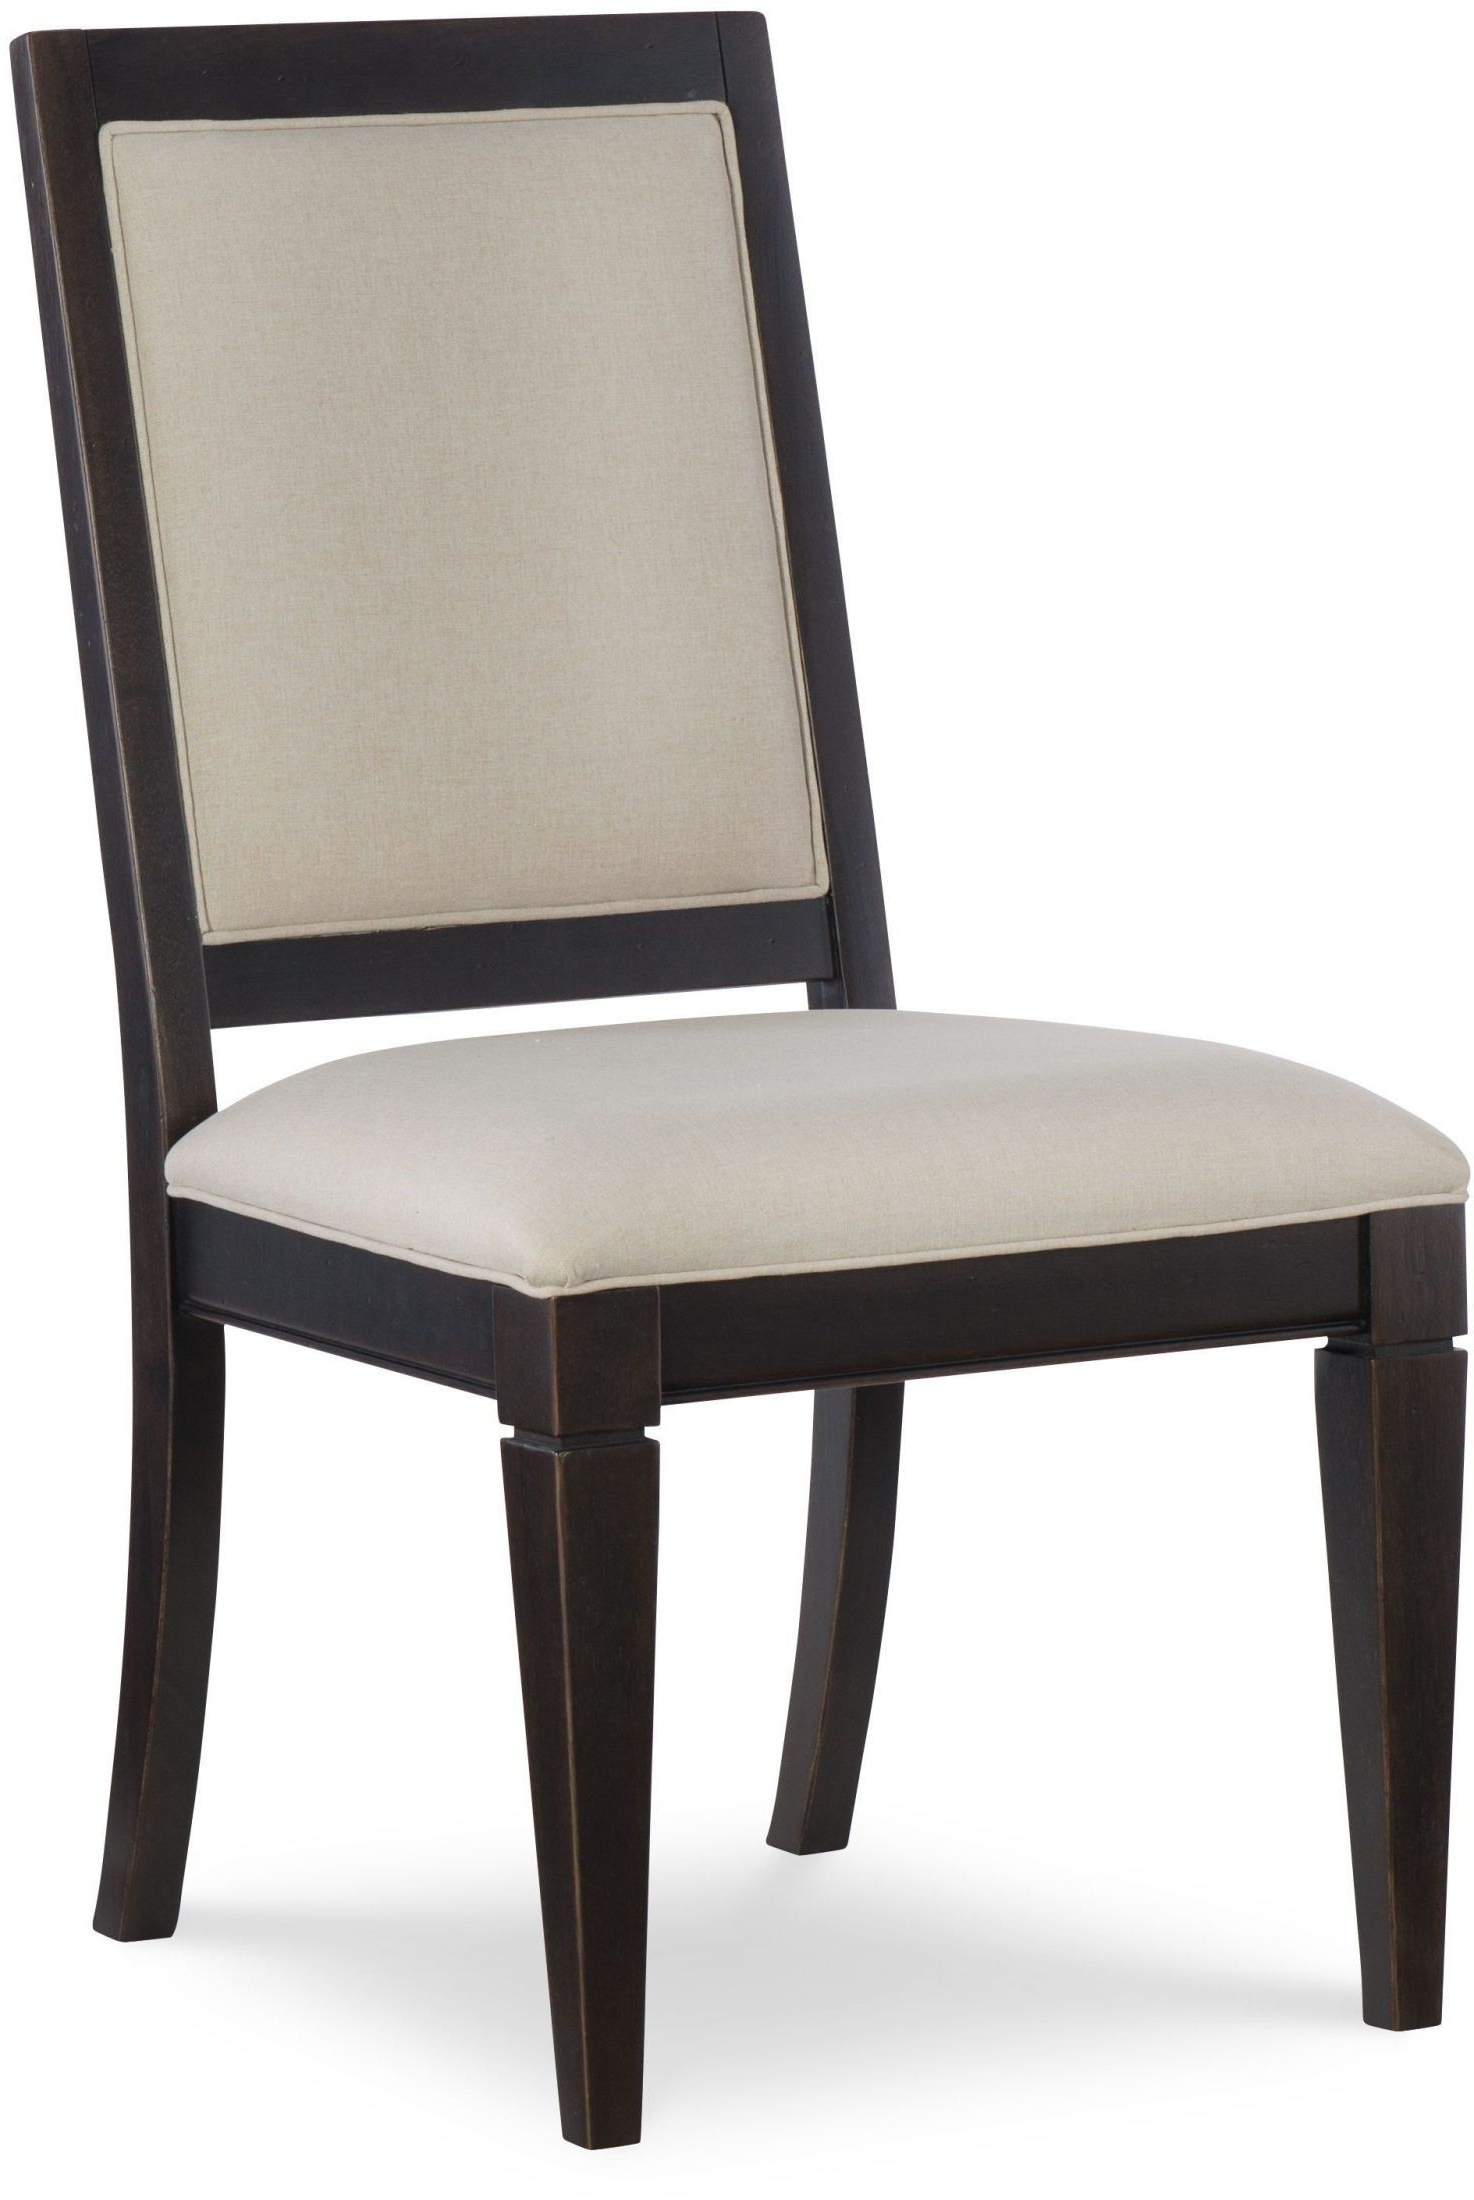 Most Up To Date Everyday Peppercorn Upholstered Back Side Chair Set Of 2Rachael Within Candice Ii Slat Back Side Chairs (View 16 of 20)